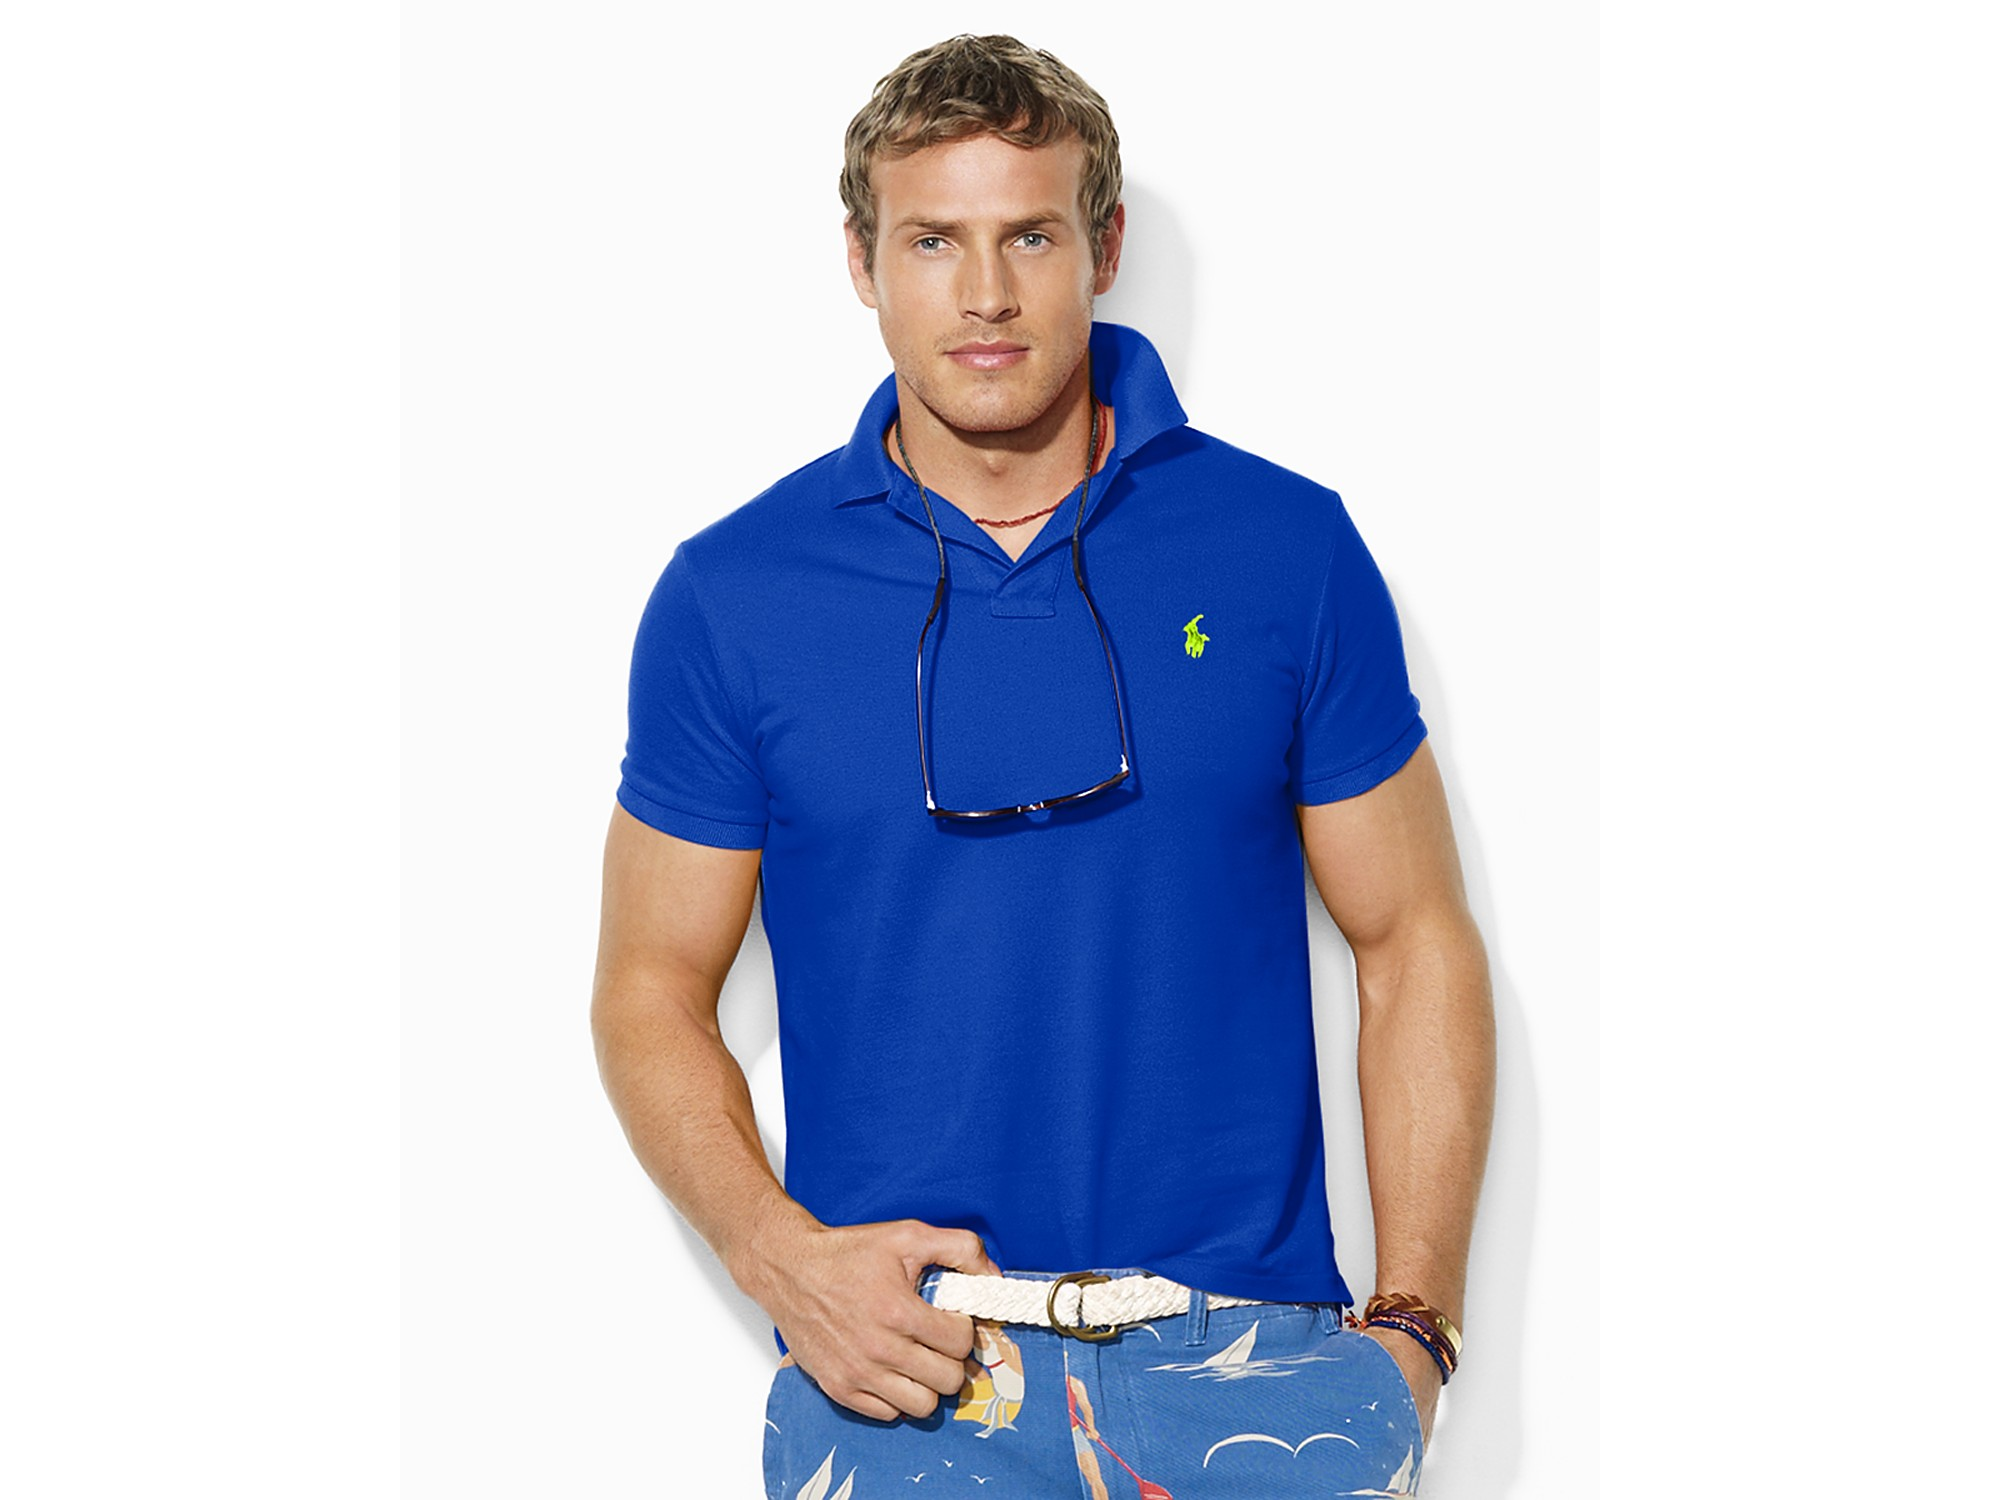 Polo ralph lauren Classic Fit Short Sleeved Cotton Mesh Polo in Blue for Men (elite